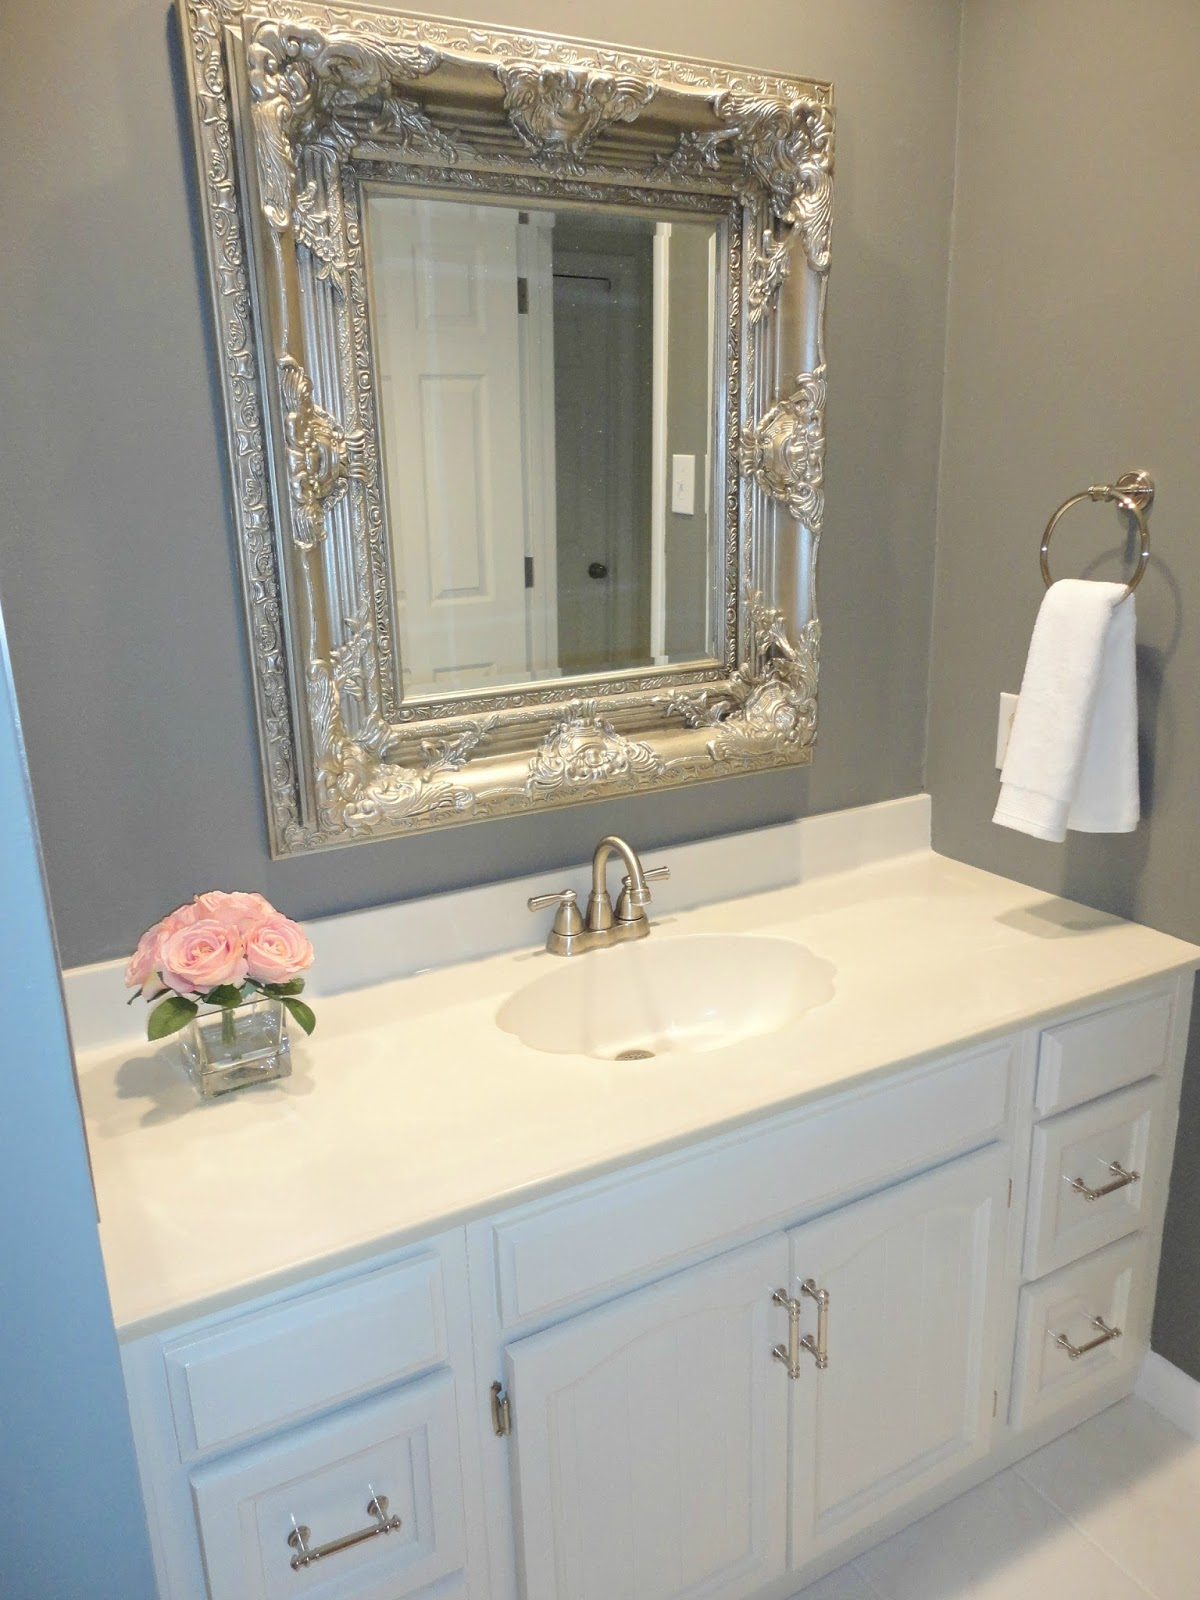 Elegant DIY Bathroom Remodel on a Budget